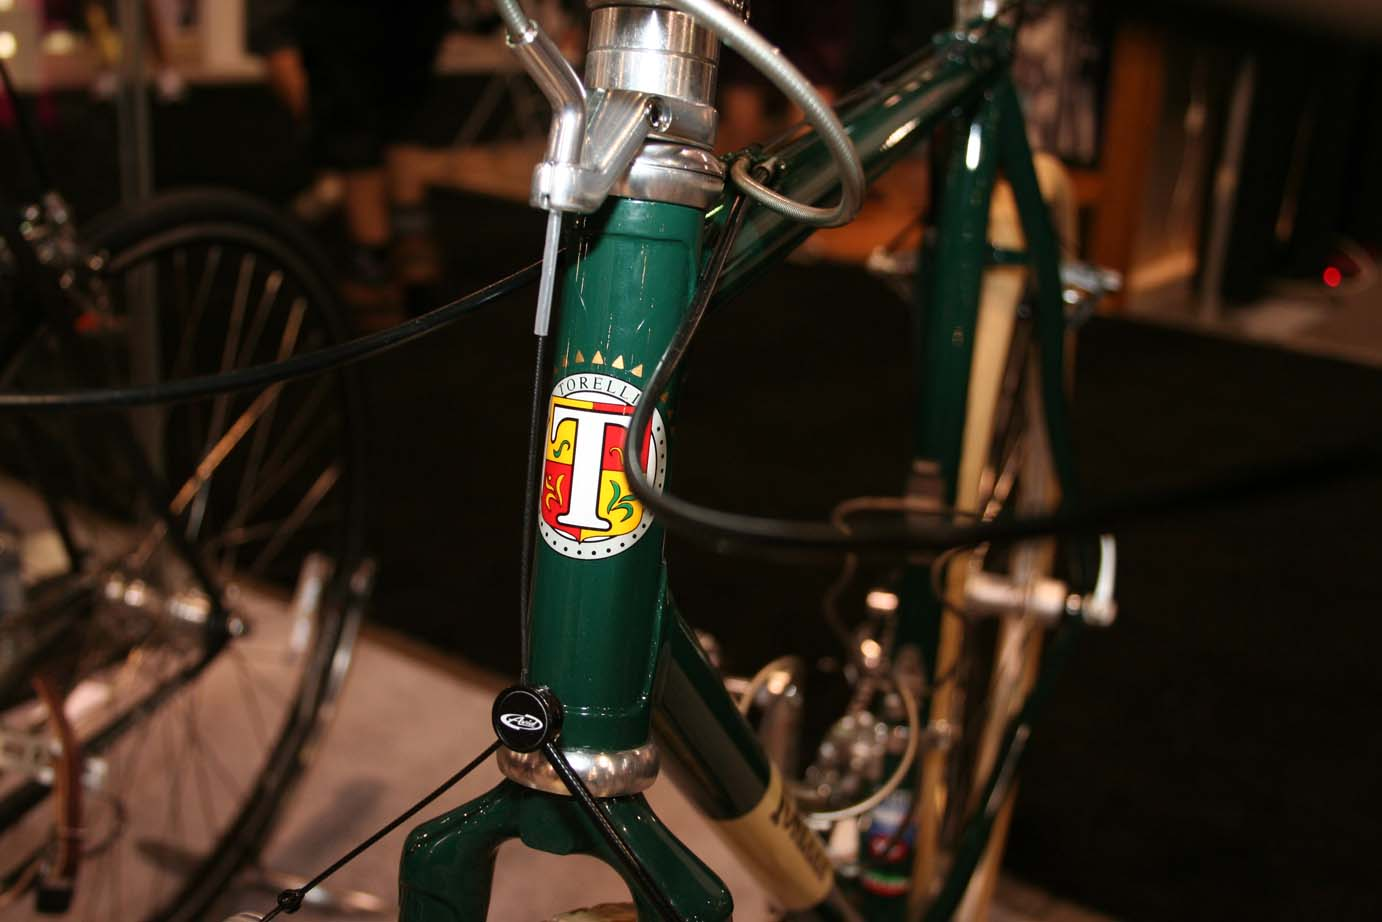 The frame sells for $1300 and comes either lugged or TIG-welded. Torelli forks are not yet available for the 1\